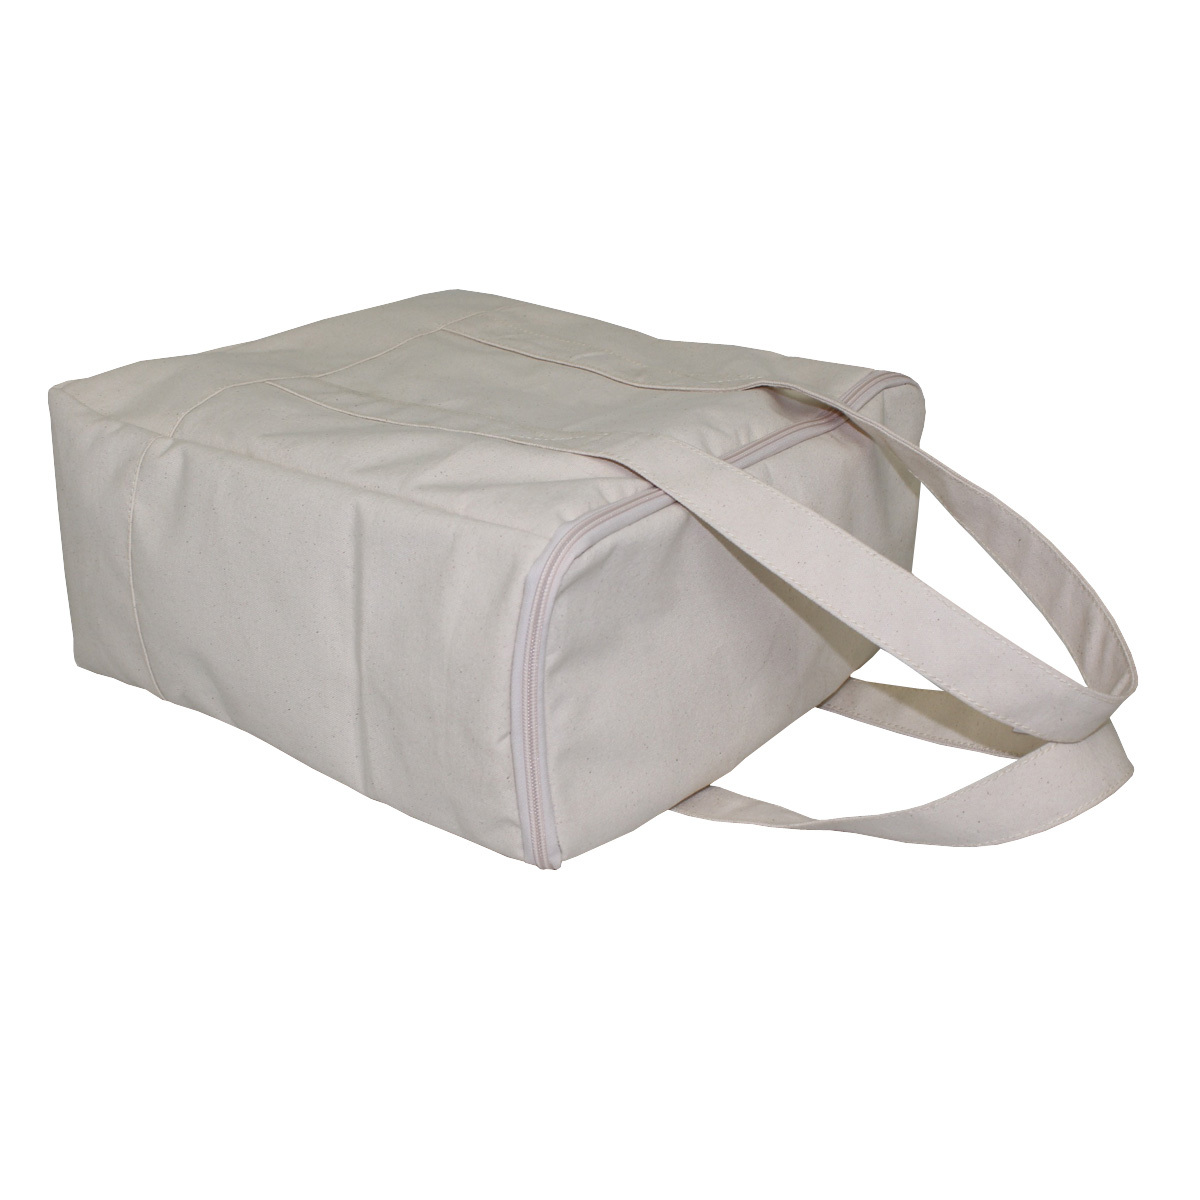 12 Oz Natural Canvas Cooler Bag With Inside PE Foam Insulator Polyester Lining